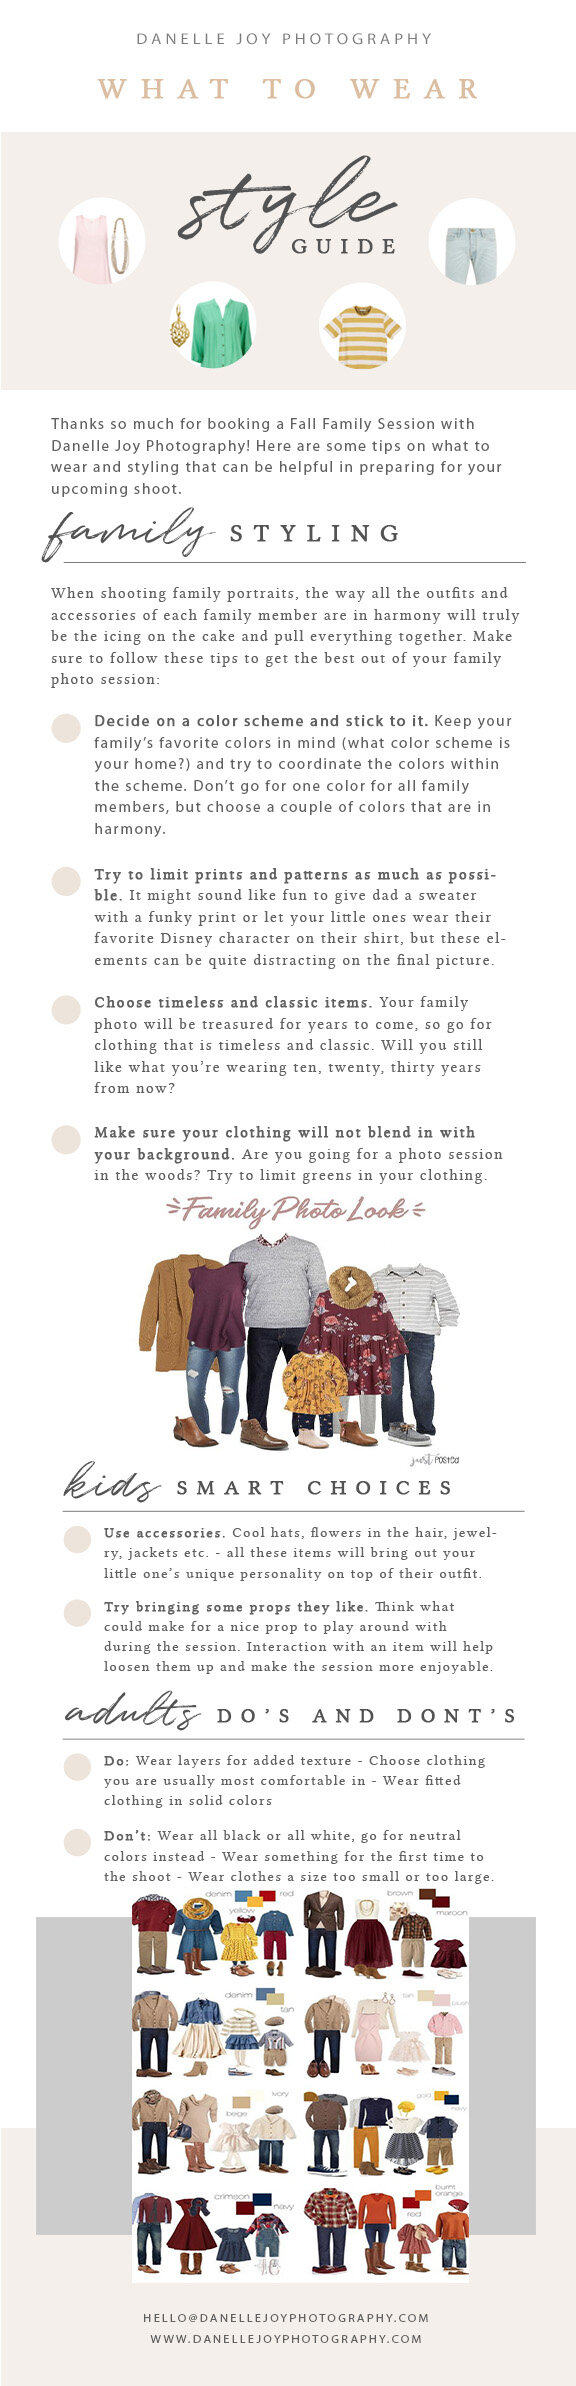 What to wear for Fall Family Photography